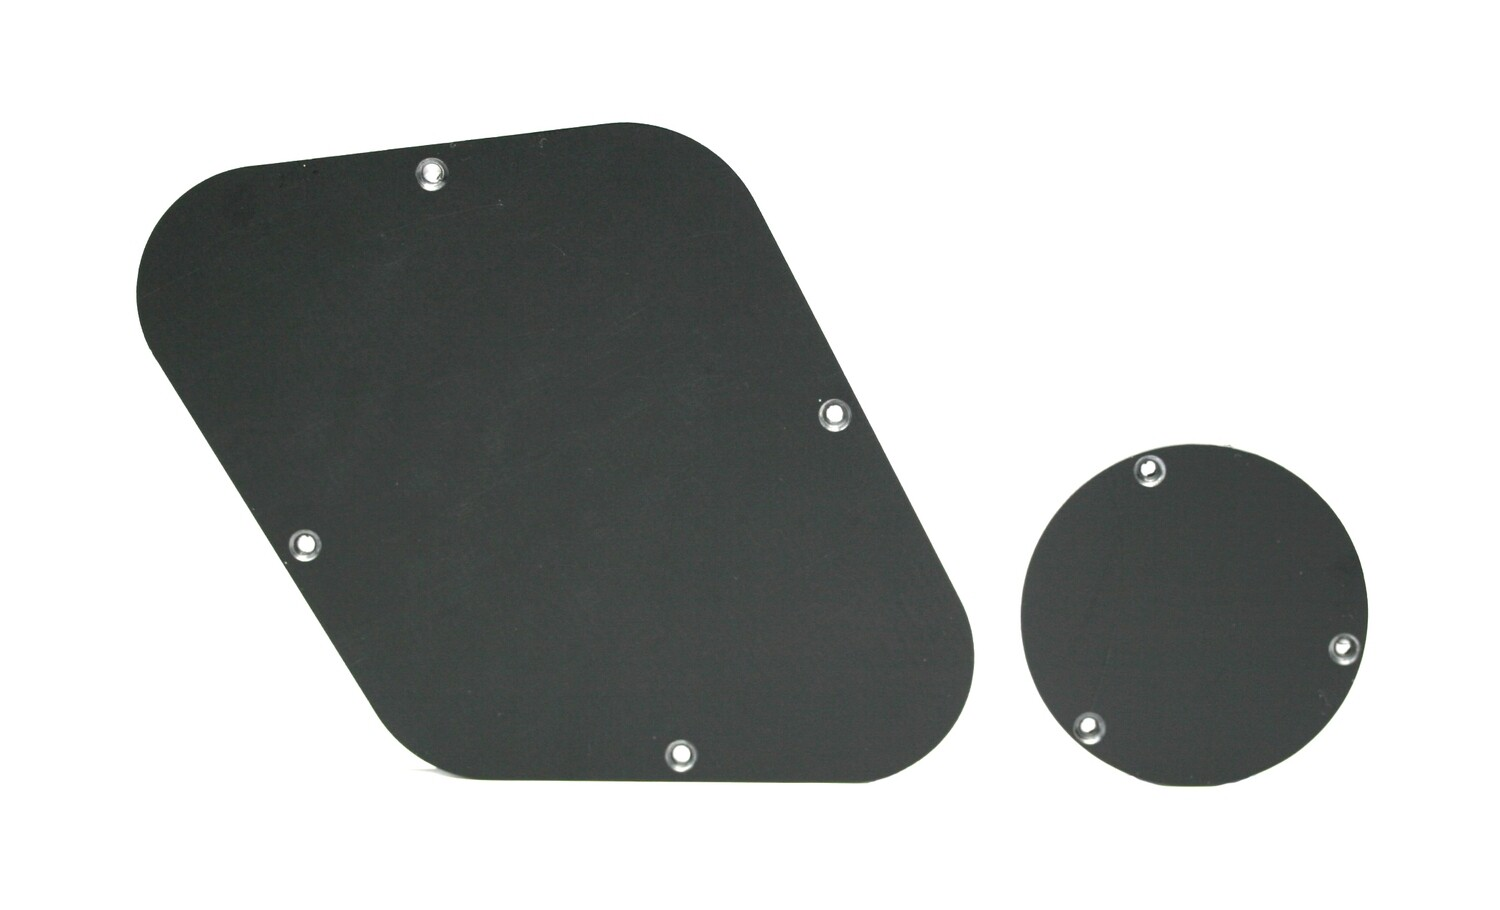 Brio Les Paul Backplate & Switch Cover Matte Black 1 Ply